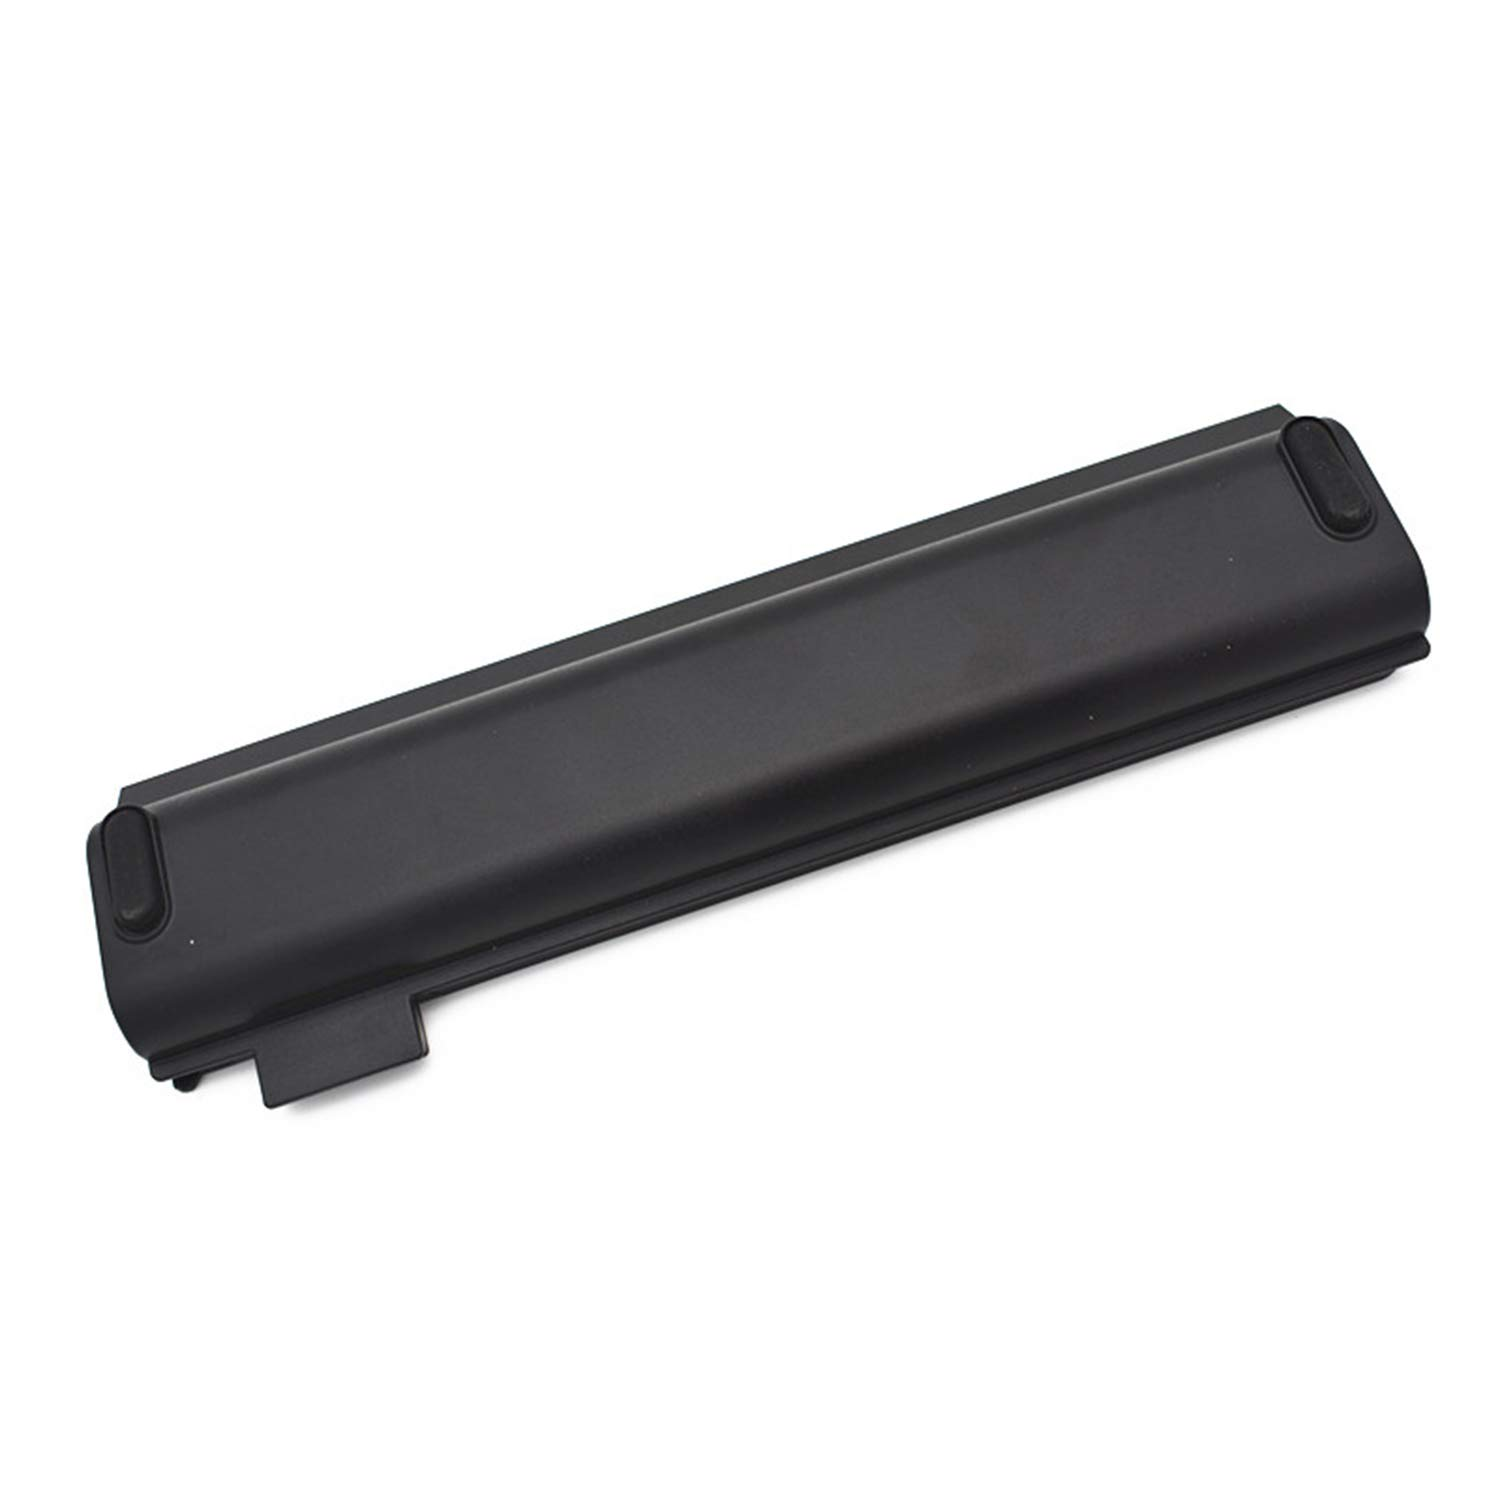 JIAZIJIA Compatible Laptop Battery with Lenovo 01AV427 [10.8V 72Wh 6600mAh 6-Cell] ThinkPad P51S P52S T470 T480 T570 T580 TP25 A475 A485 Series 61++ 01AV428 01AV492 4X50M08812 SB10K97584 SB10K97585 by JIAZIJIA (Image #4)